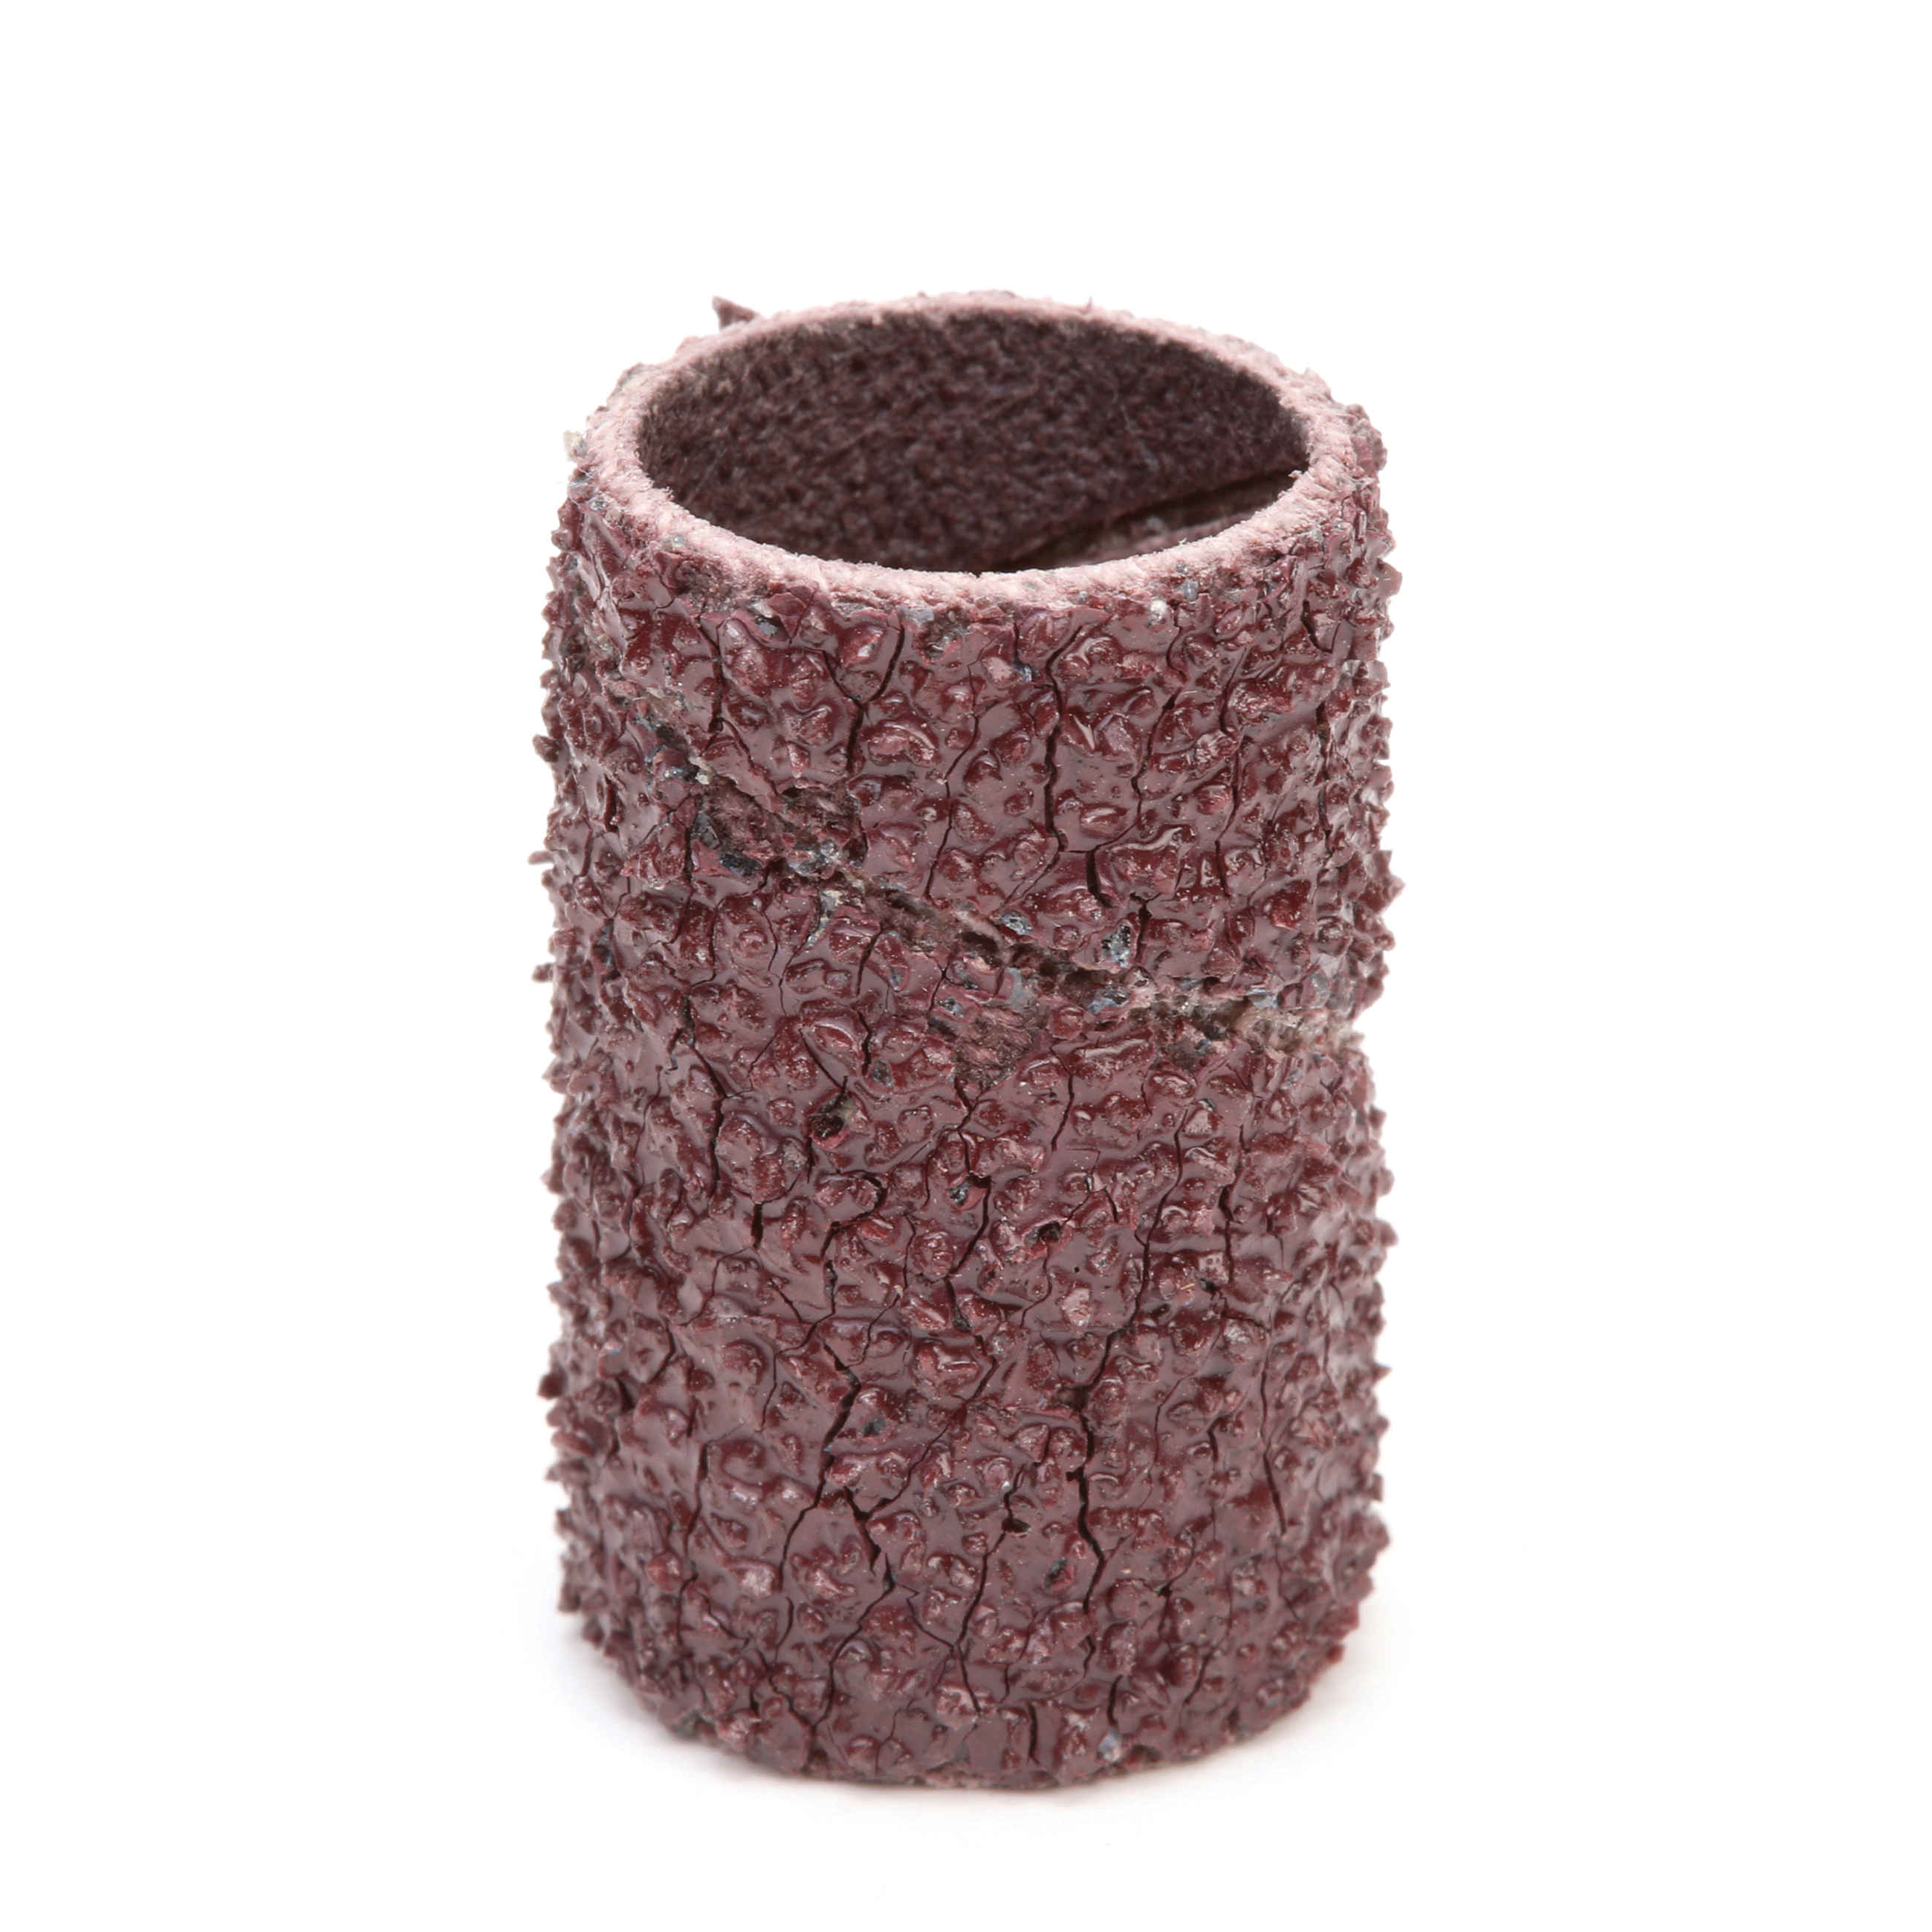 3M™ Evenrun™ 051144-97458 341D Surface Conditioning Coated Abrasive Band, 1/2 in Dia x 1 in L Band, 36 Grit, Very Coarse Grade, Aluminum Oxide Abrasive